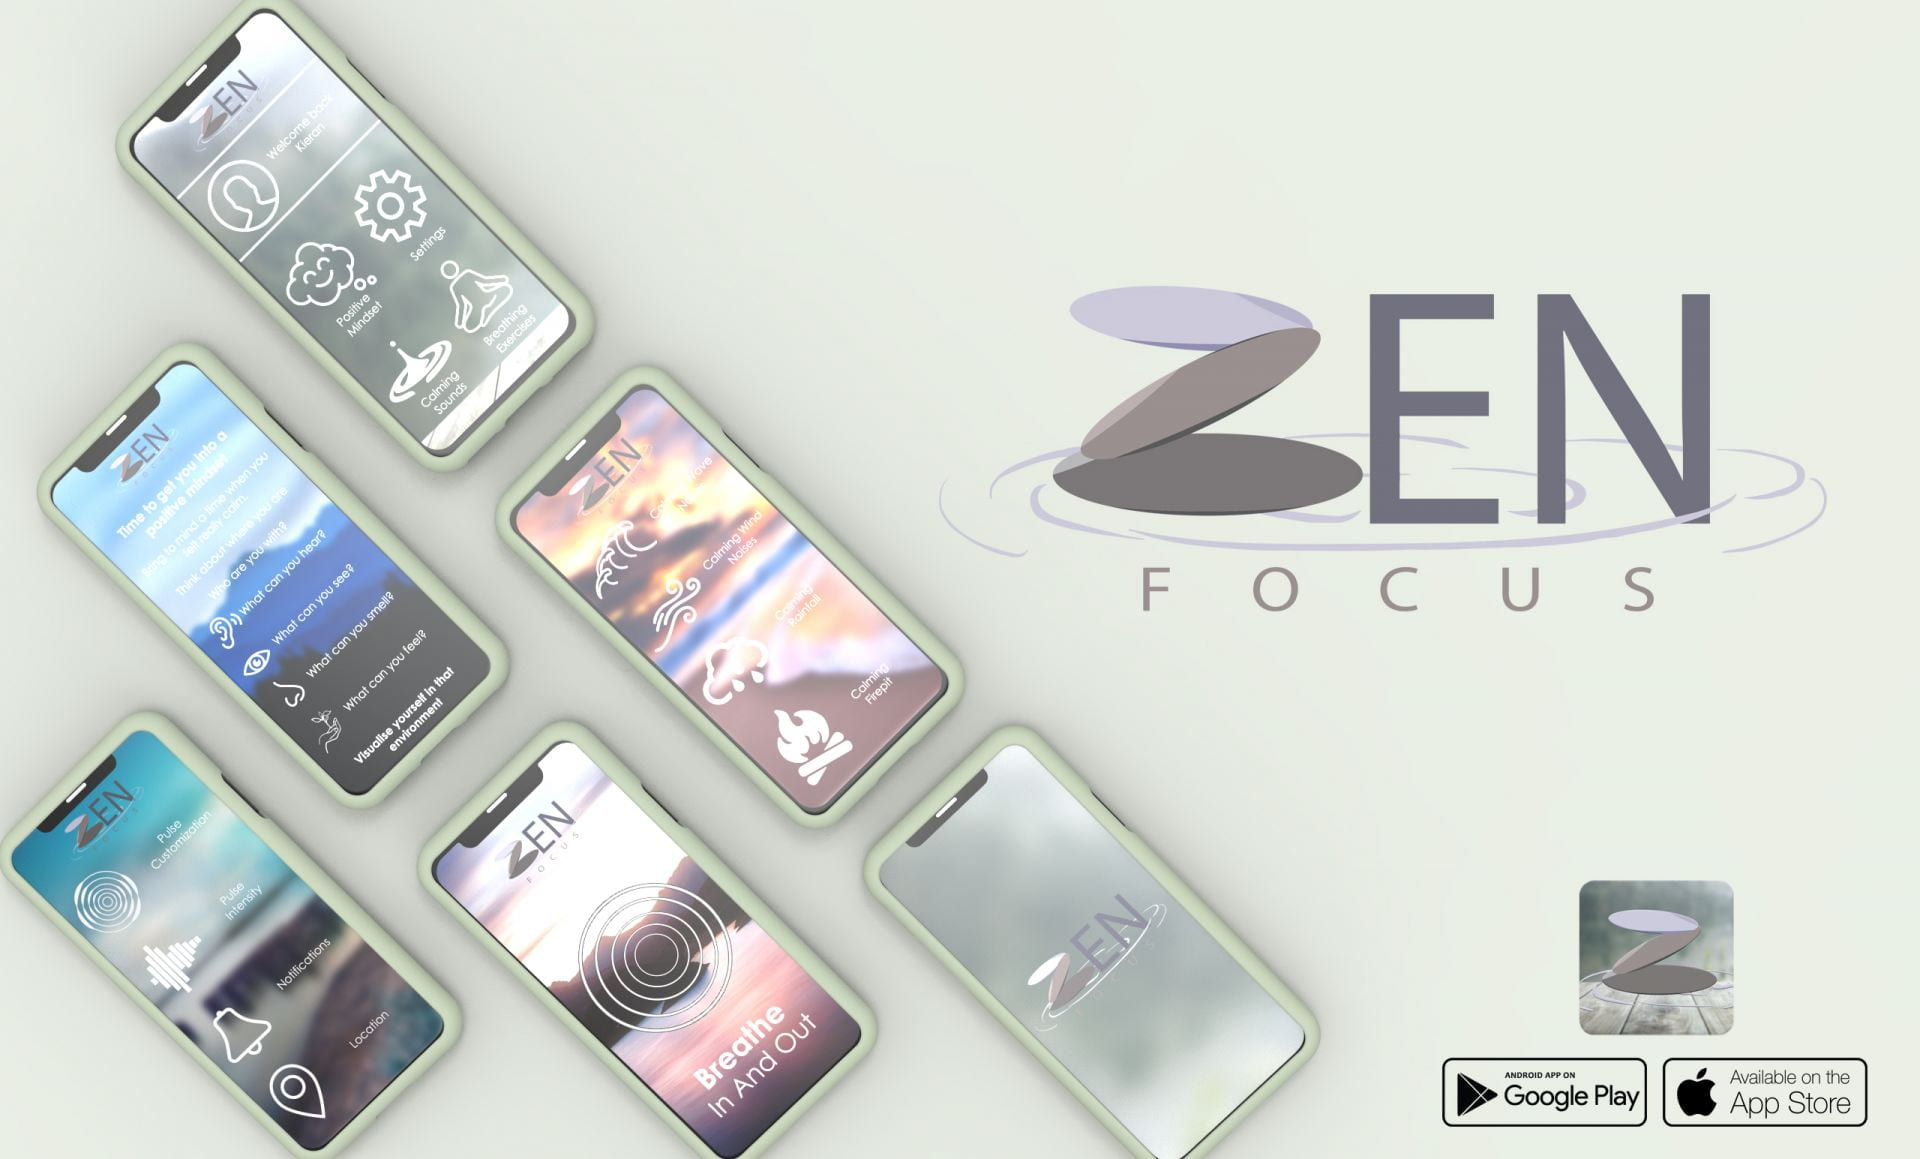 Collage showing the multiple uses of the app displayed on phone screens, alongside a logo and App store logos.